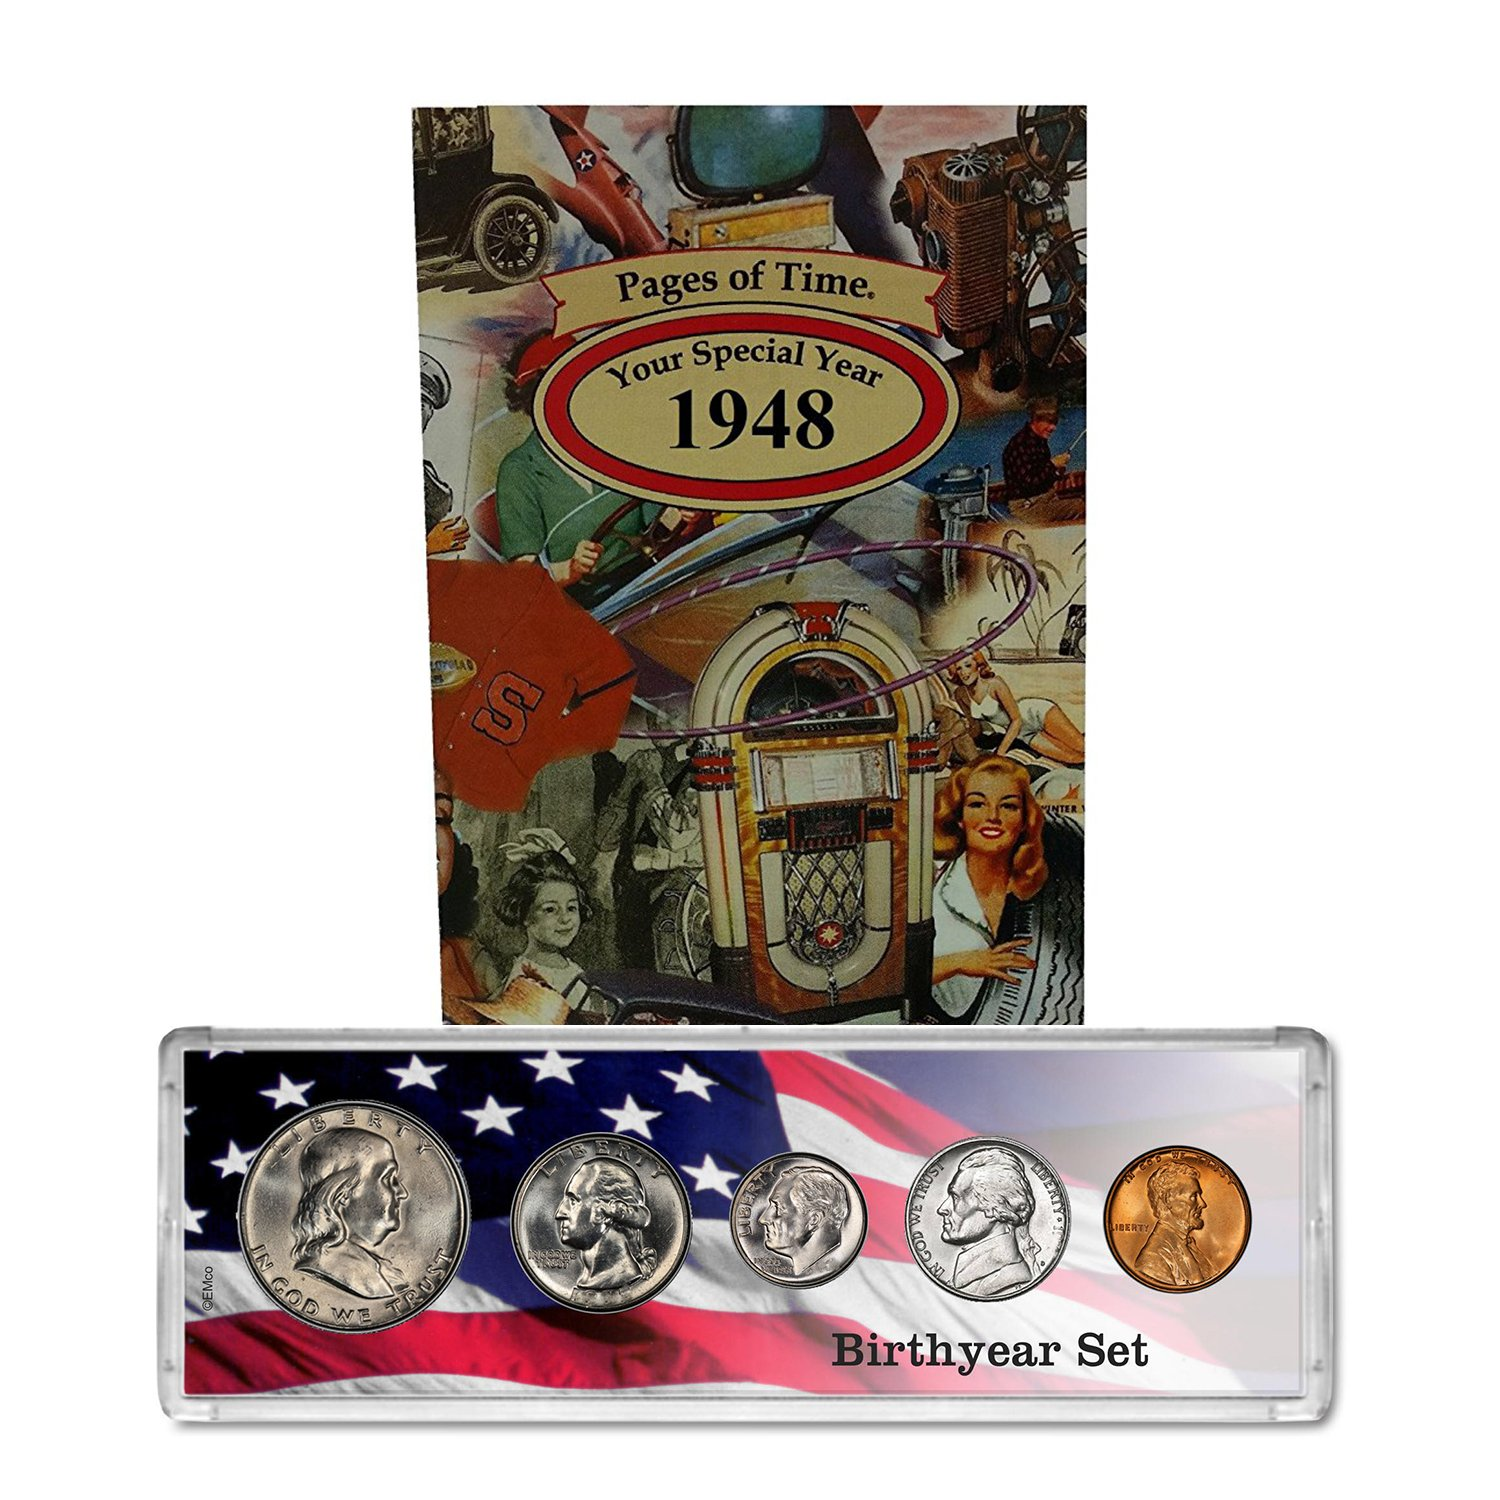 1948 Year Coin Set & Greeting Card : 71st Birthday Gift - Birthyear Set by Coins4Me